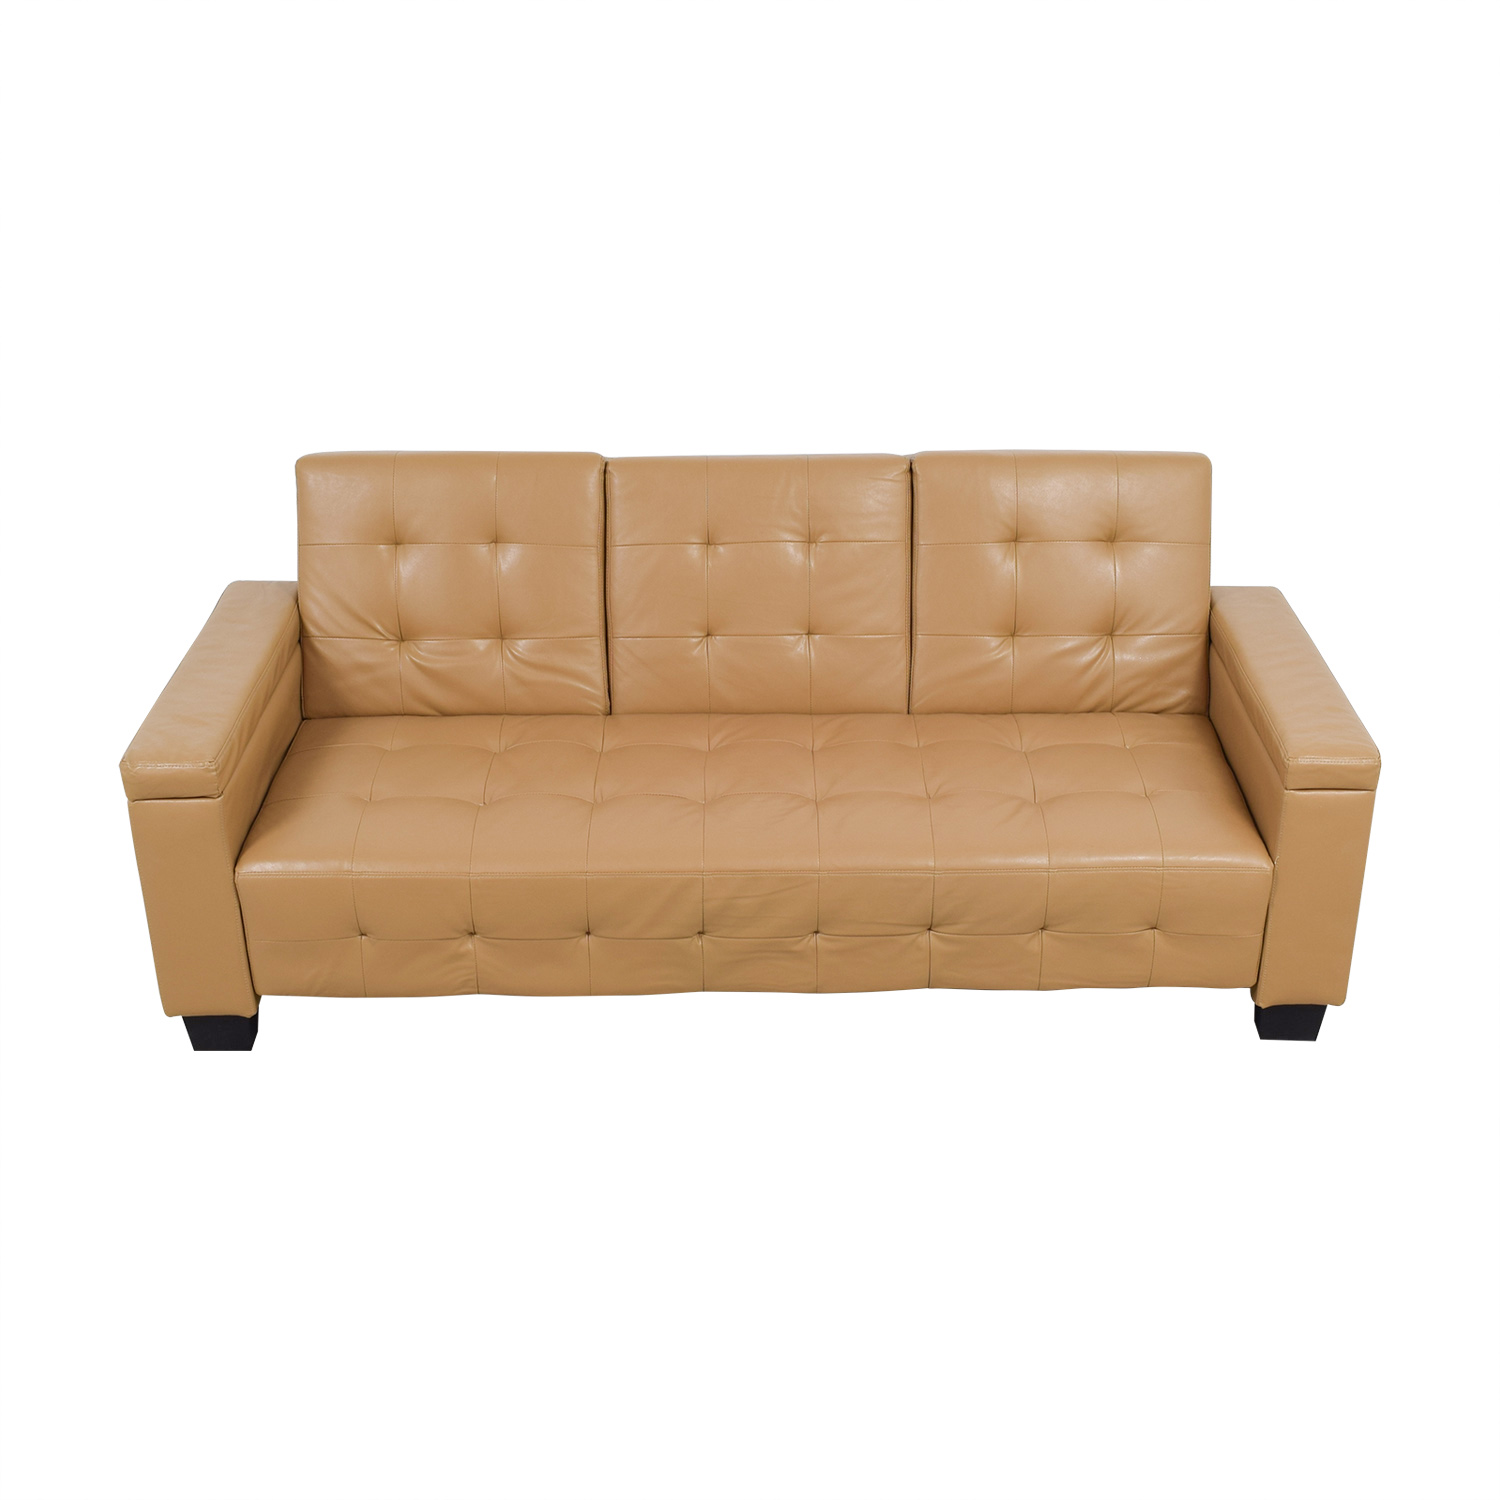 67 off tufted khaki leather sofa futon sofas for Tufted leather sleeper sofa